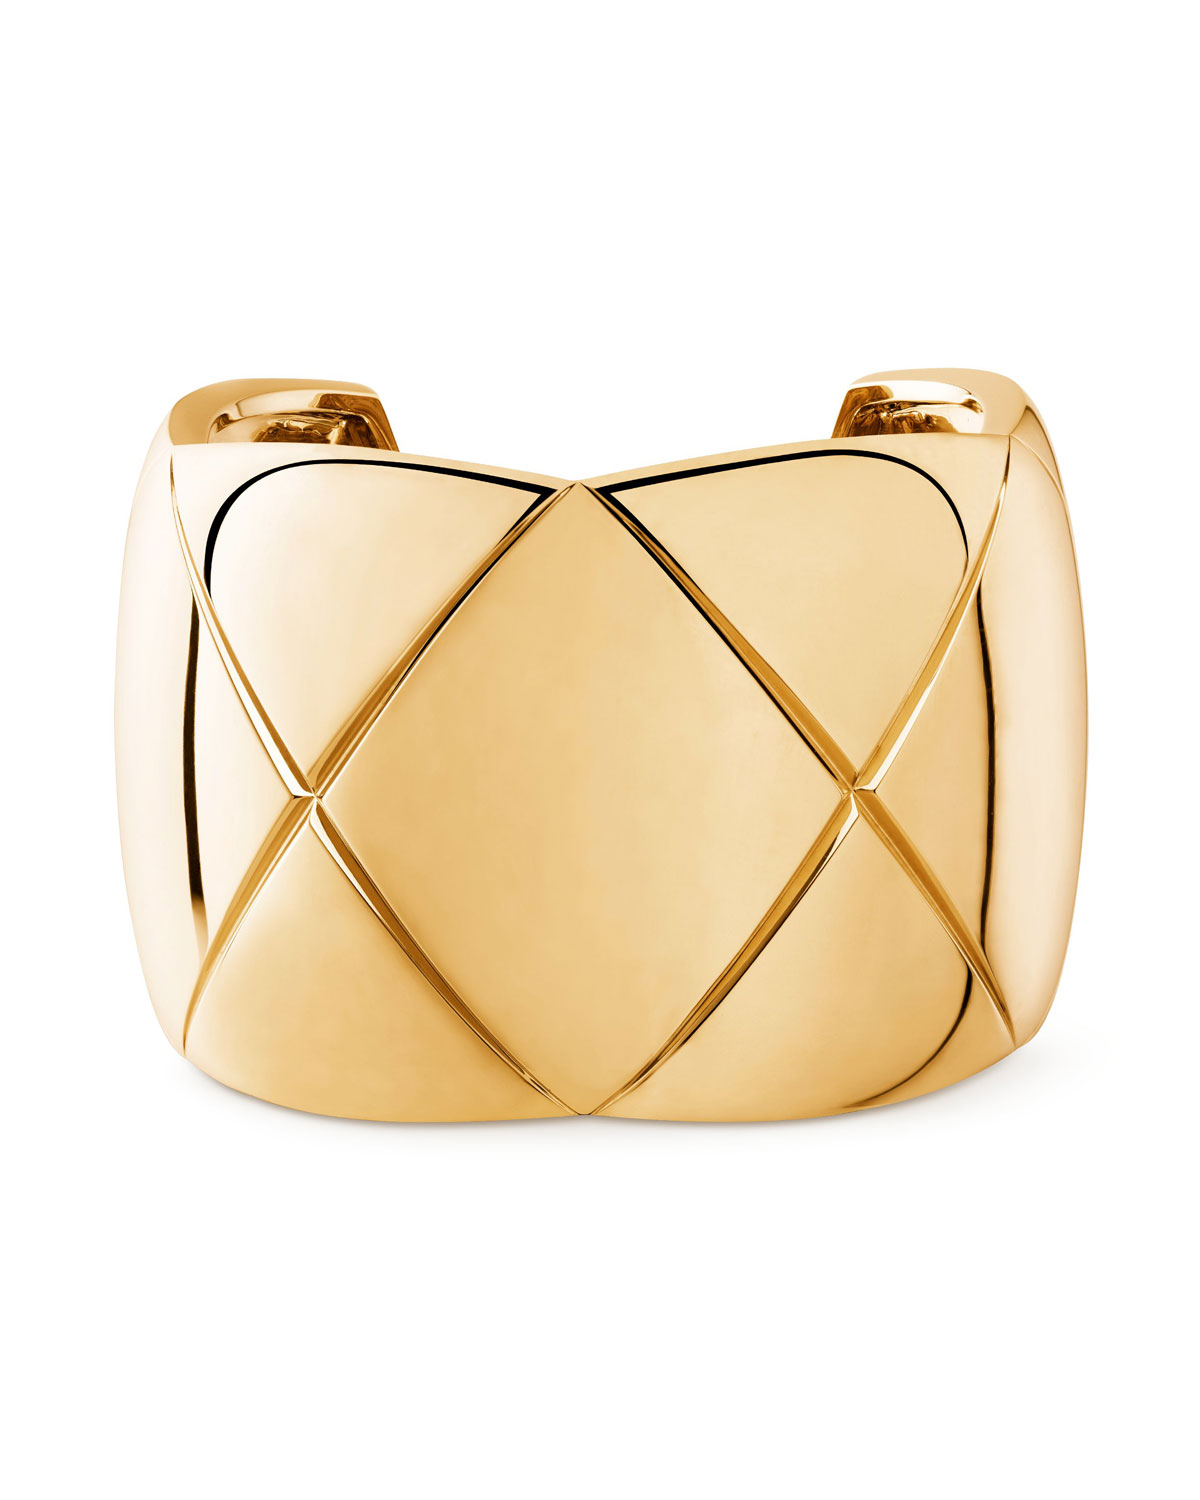 71cf7a68e632c6 CHANEL COCO CRUSH CUFF IN 18K YELLOW GOLD | Neiman Marcus